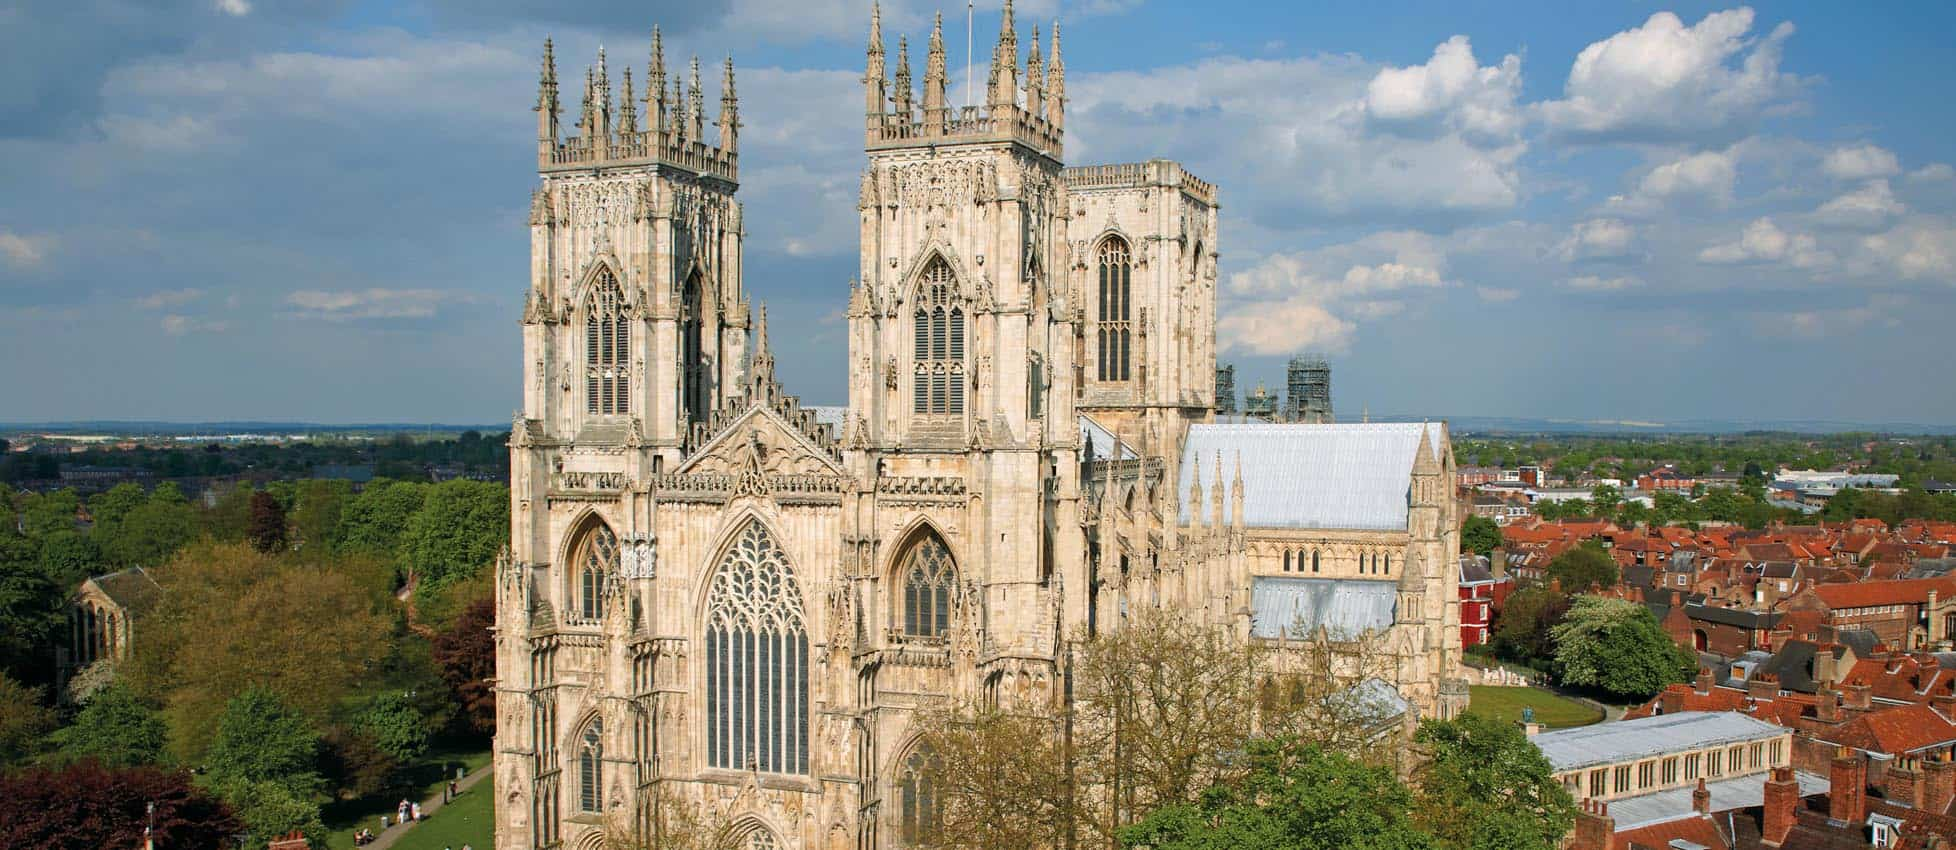 Image result for pictures of york cathedral